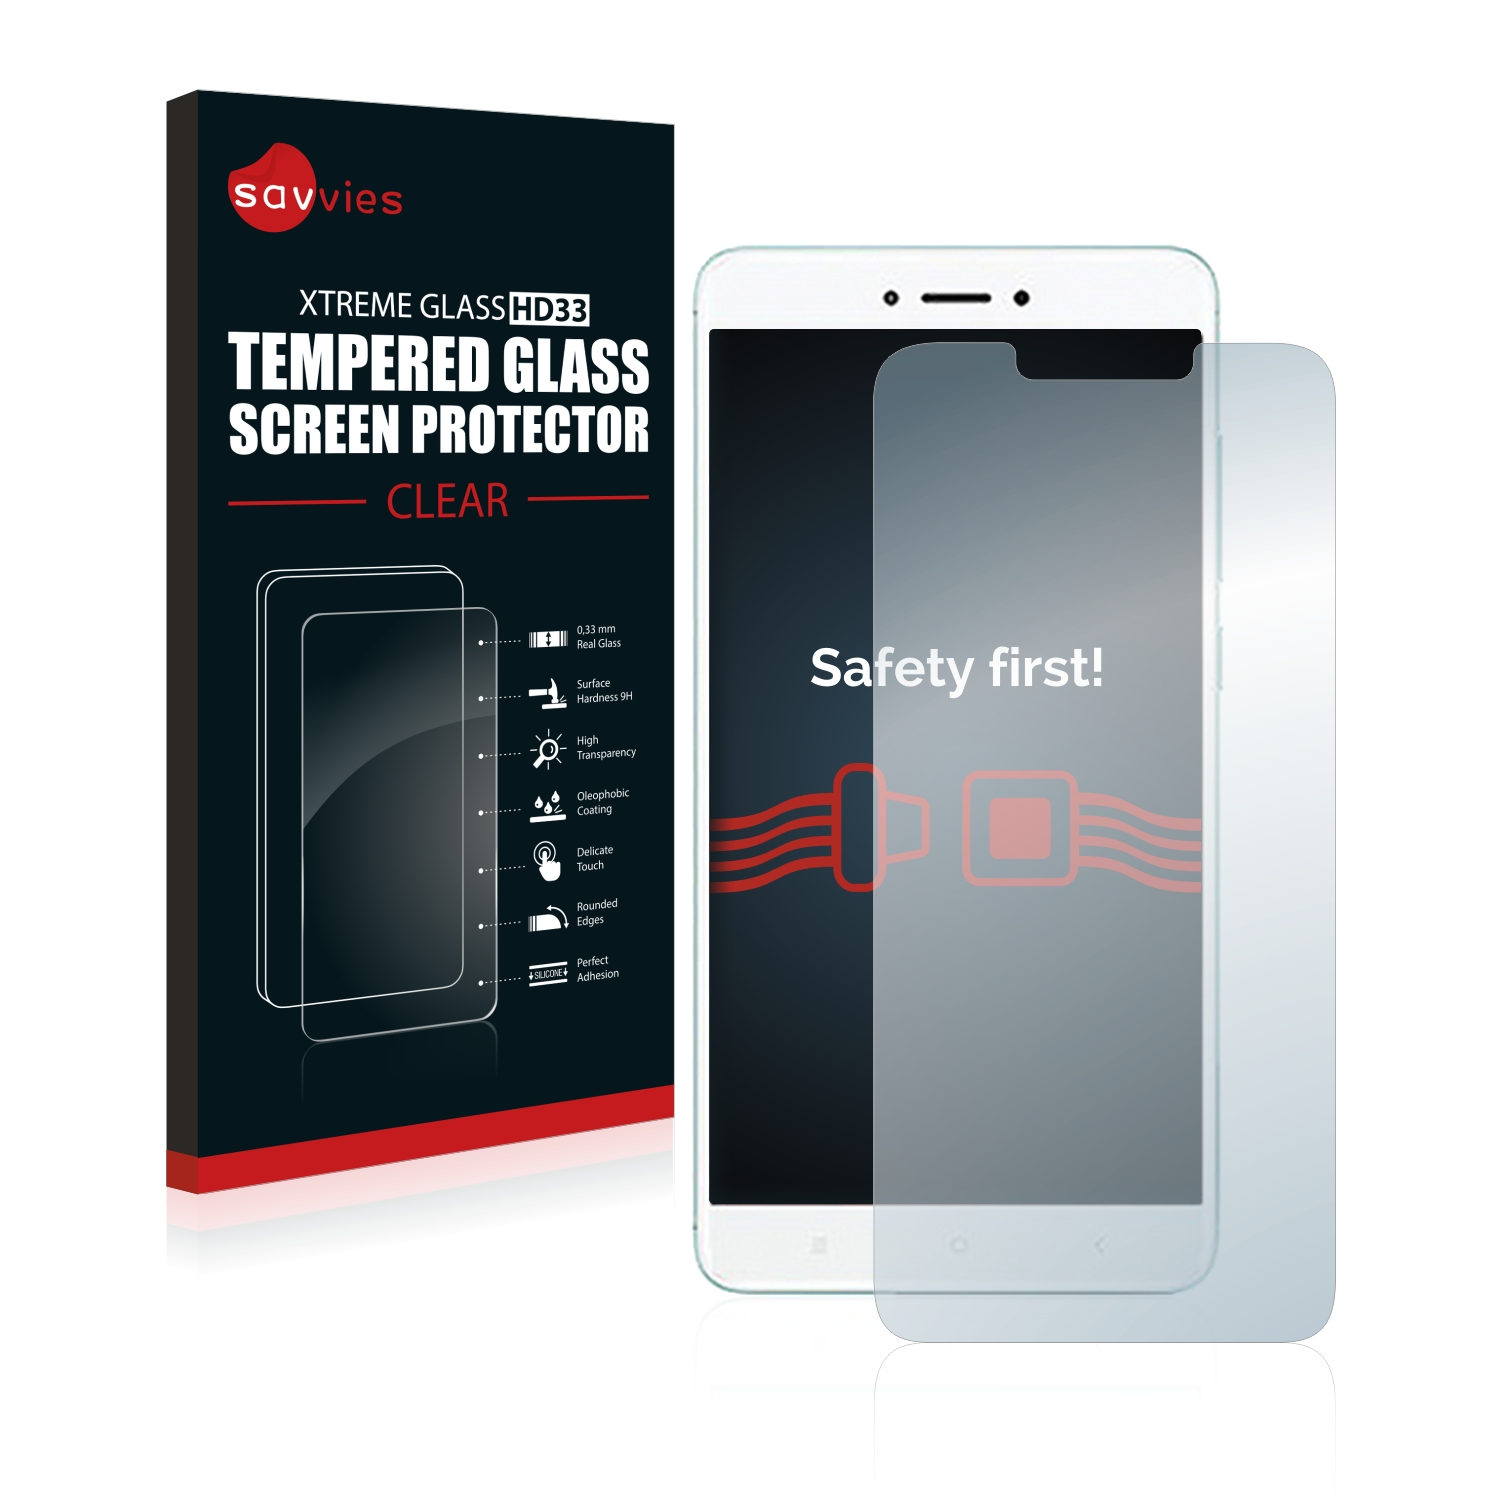 Tempered Glass Screen Protector For Xiaomi Redmi 4x 4059181811208 Ebay Full Cover Savvies Hd33 Clear